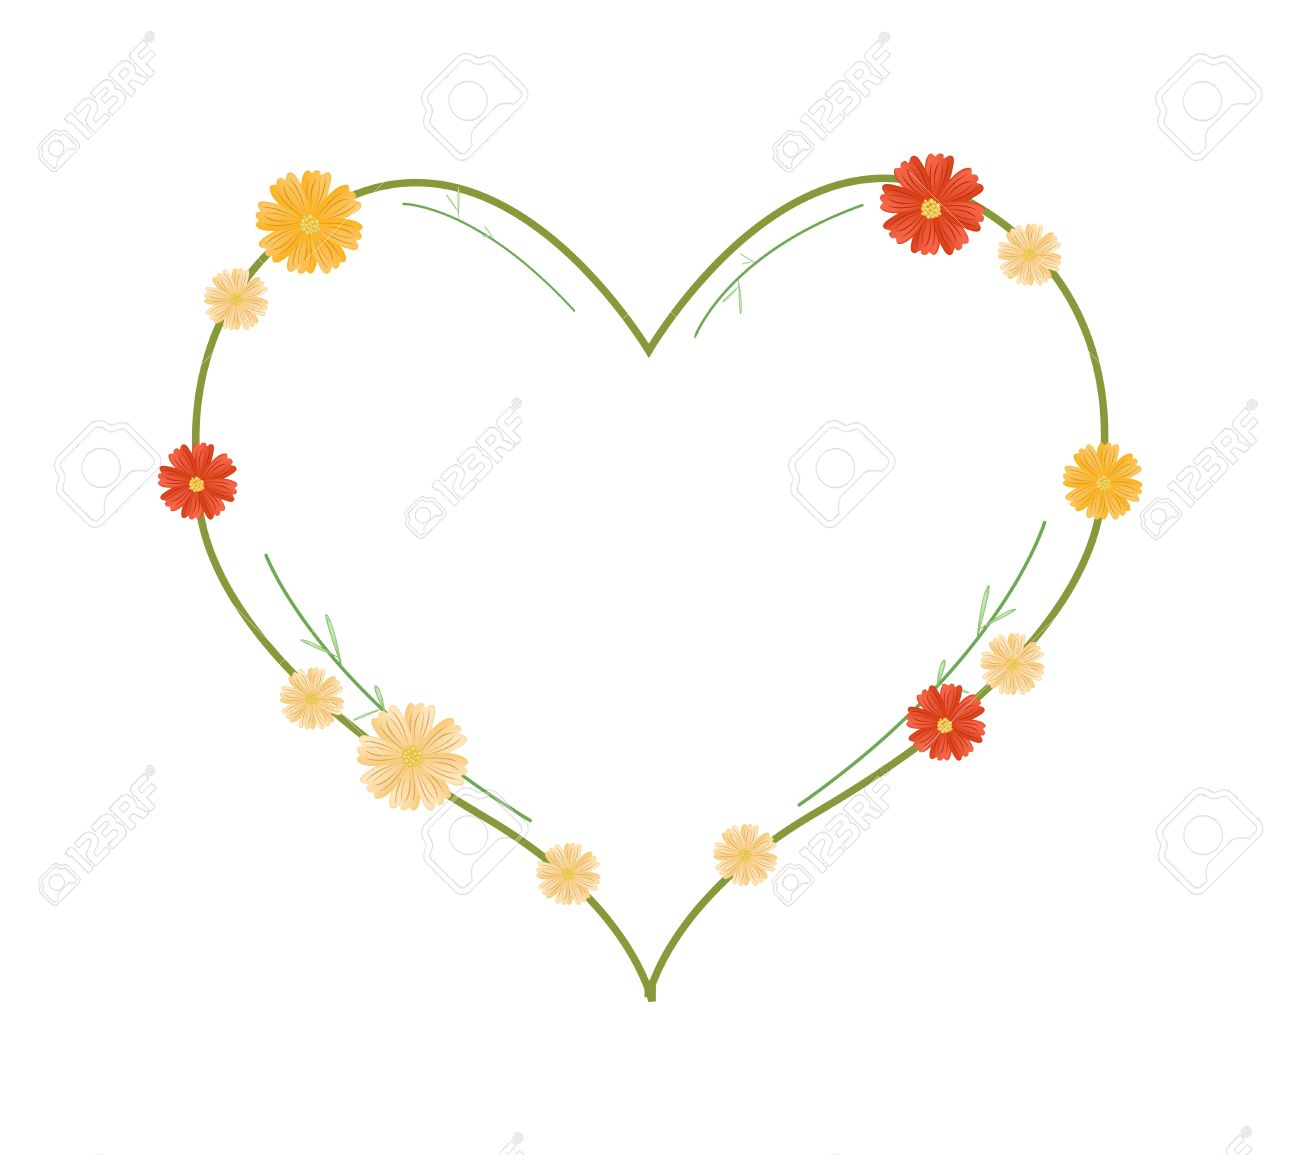 Love Concept, Illustration Of Yellow And Orange Cosmos Flowers.